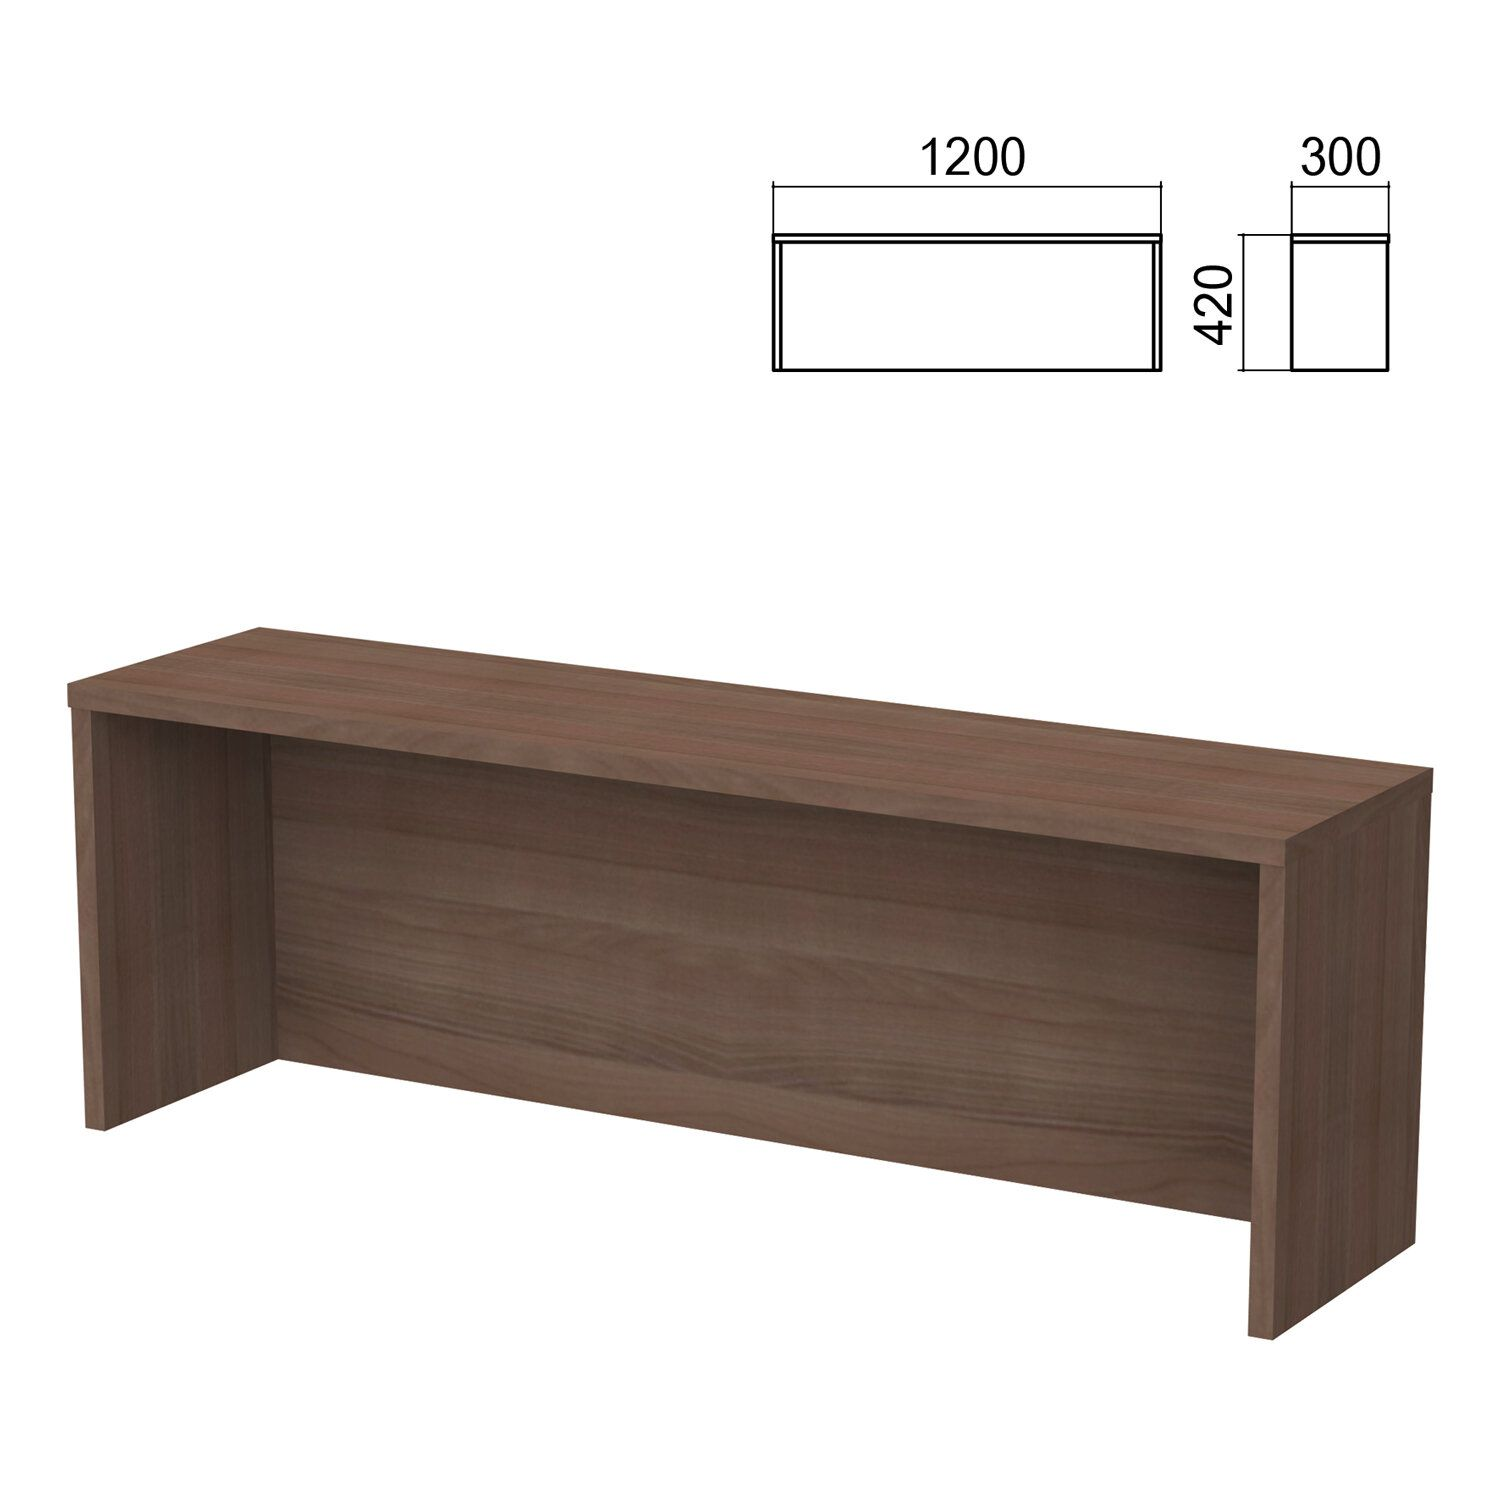 Argo table add-on, 1200 mm wide, garbo